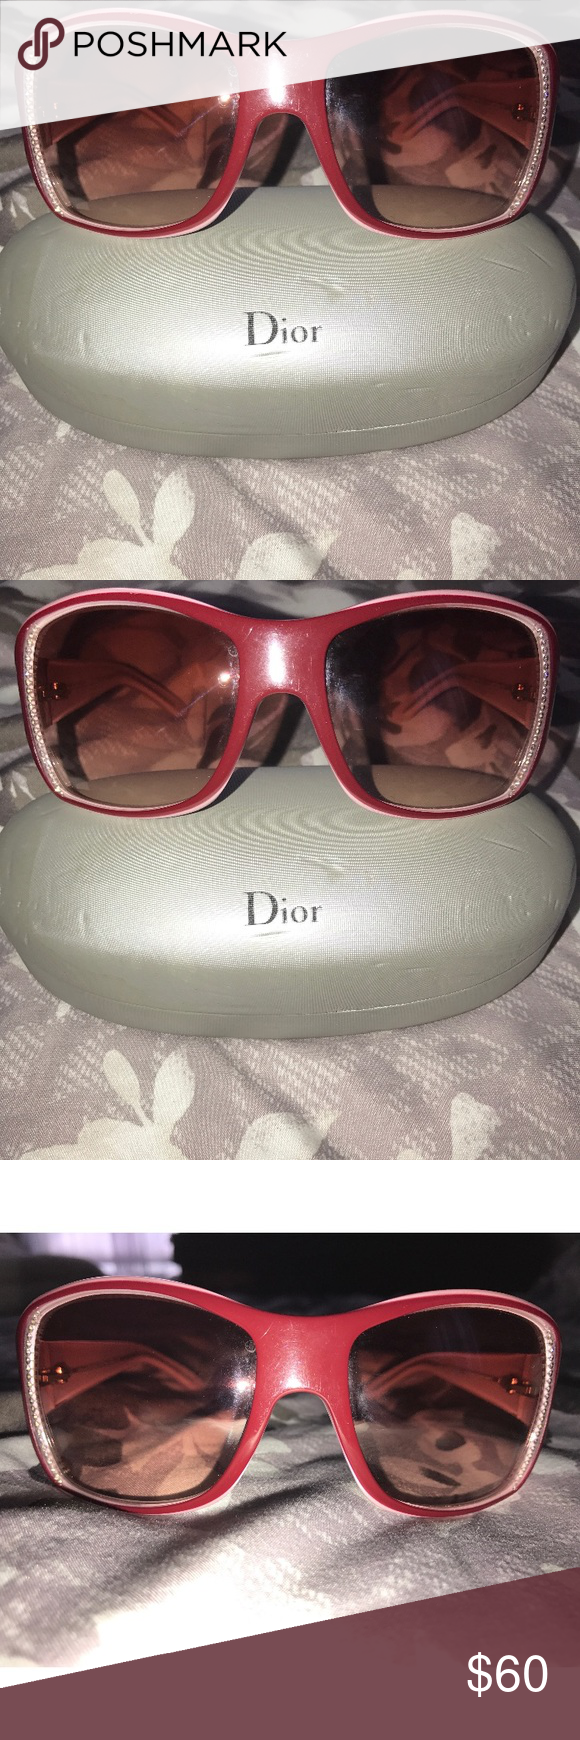 62bb6ecc23e ️SALE MAKE OFFER‼️Christian Dior Sunglasses ❗️SALE❗️Dior sunglasses 💯  authentic!!!!! Missing a few stones but could easily be replaced is someone  is ...